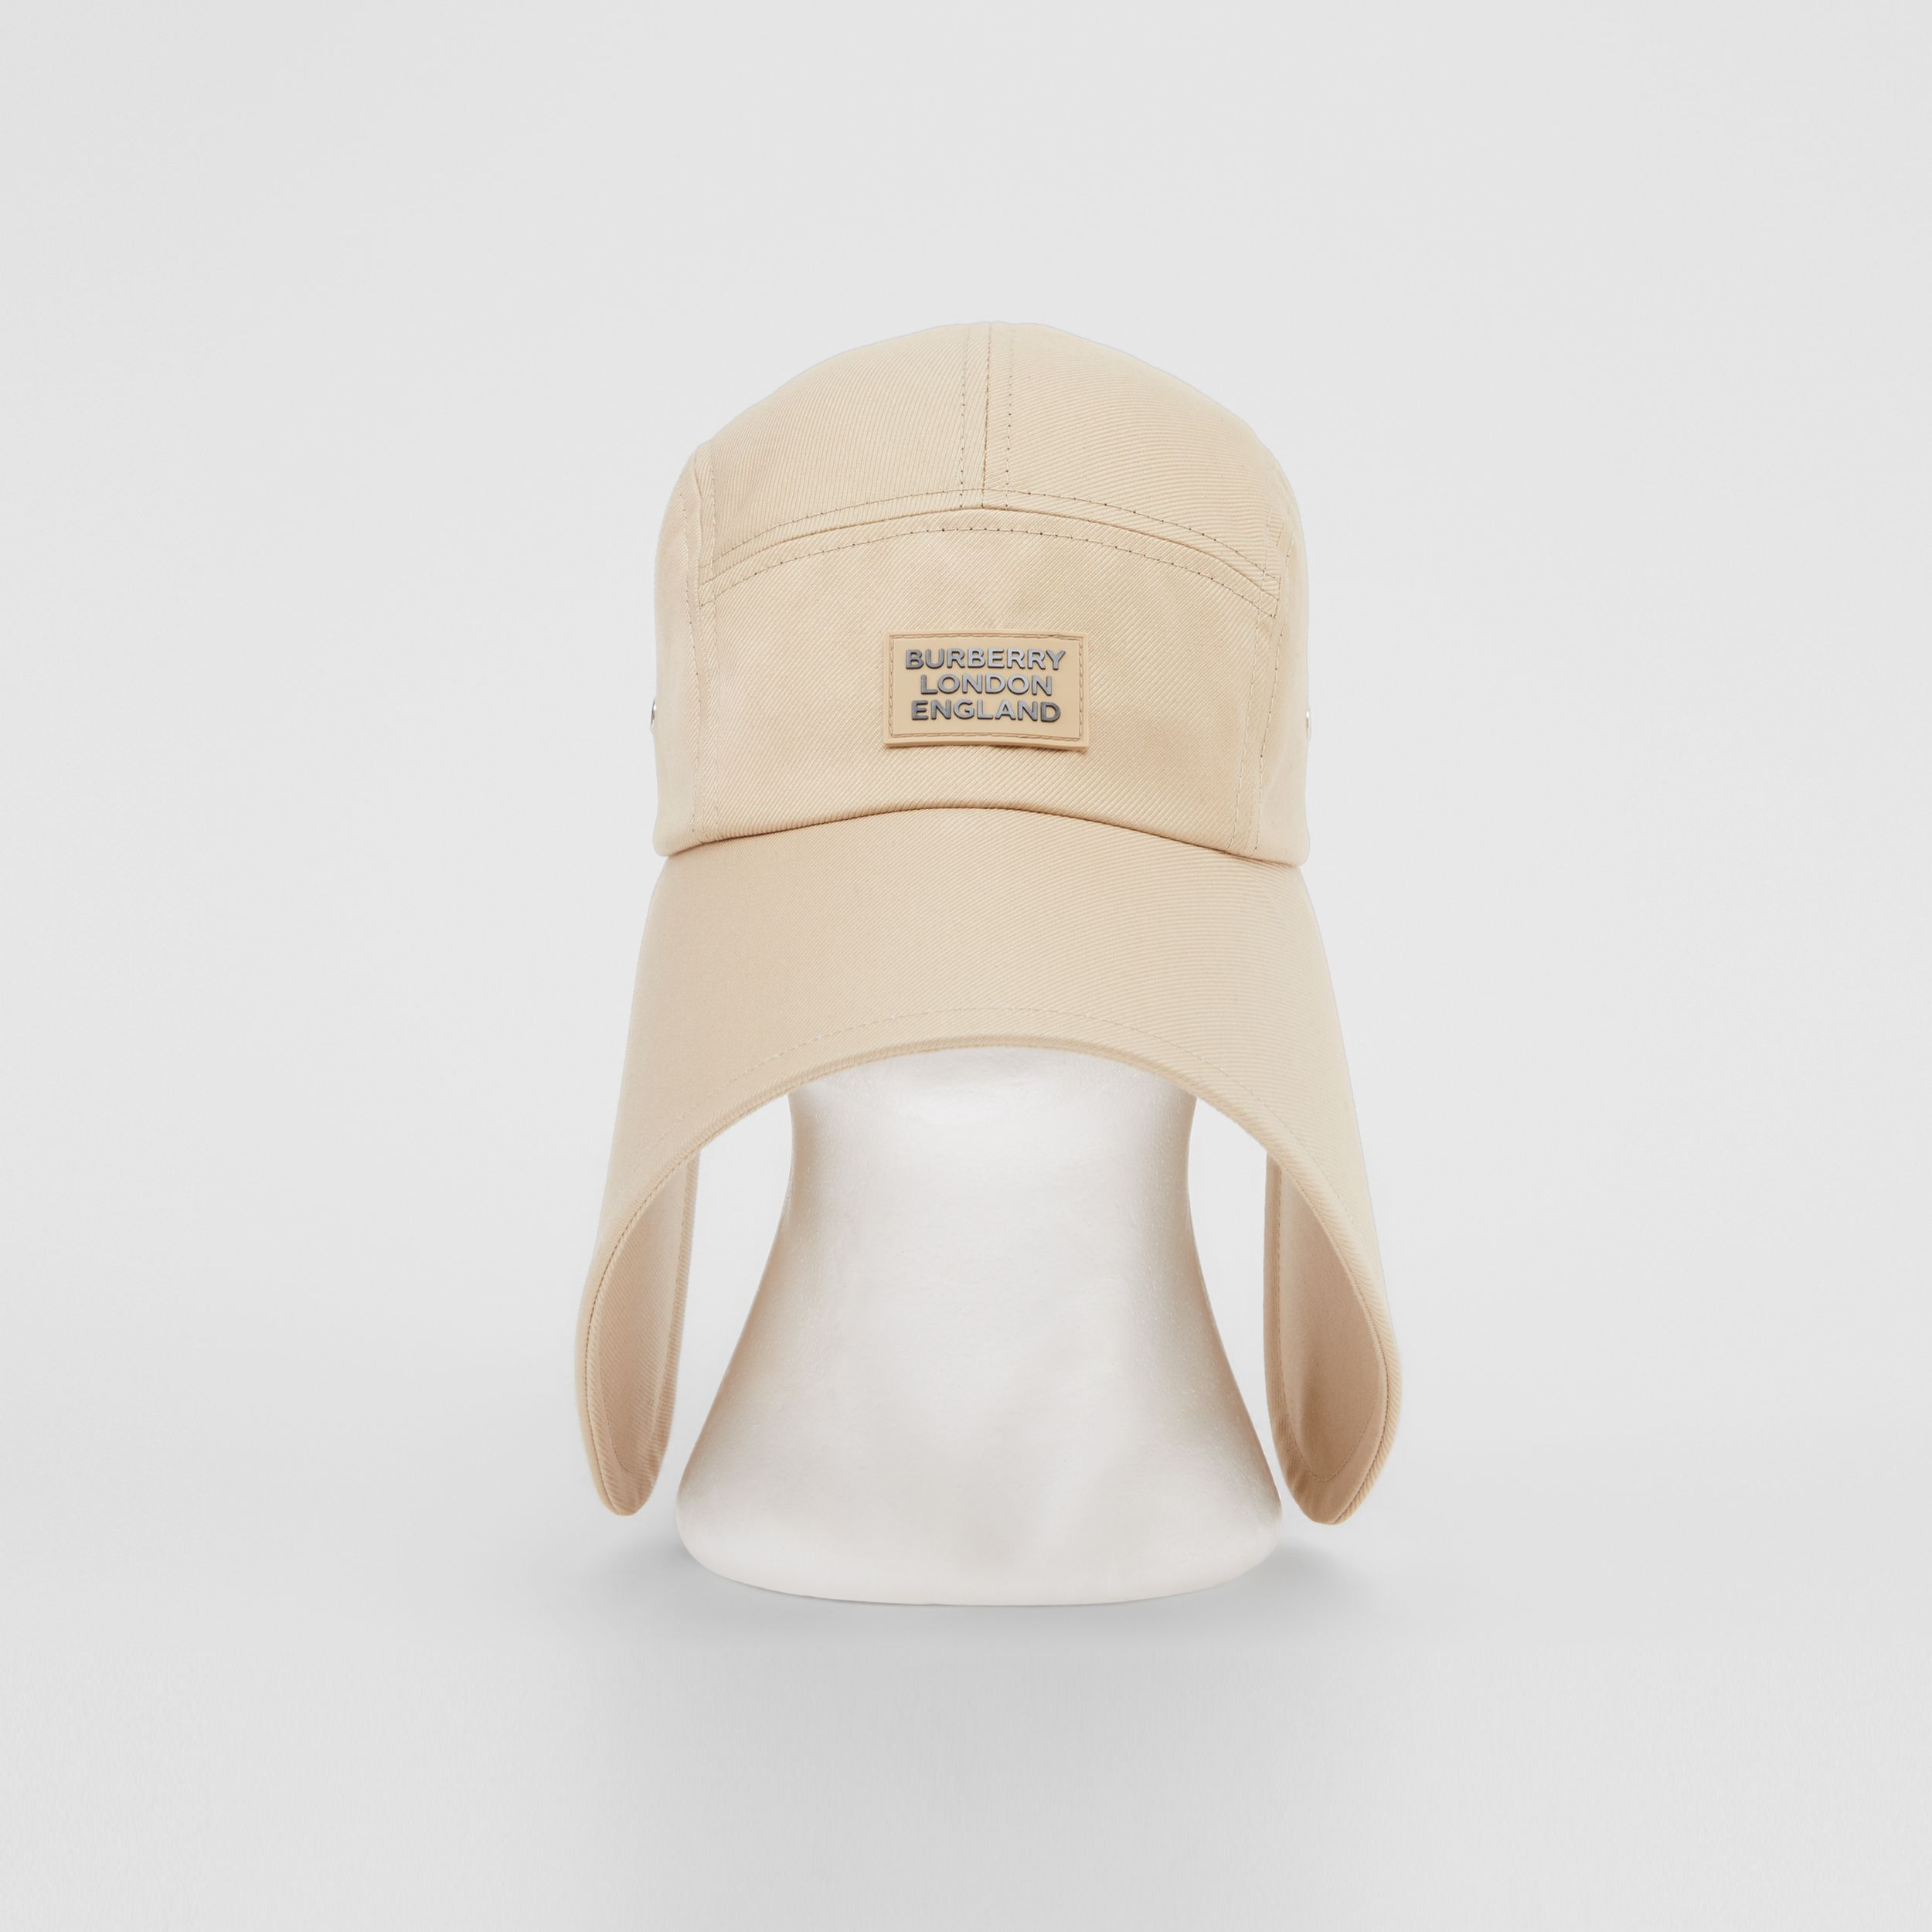 Logo Appliqué Cotton Twill Bonnet Cap in Soft Fawn | Burberry - 1